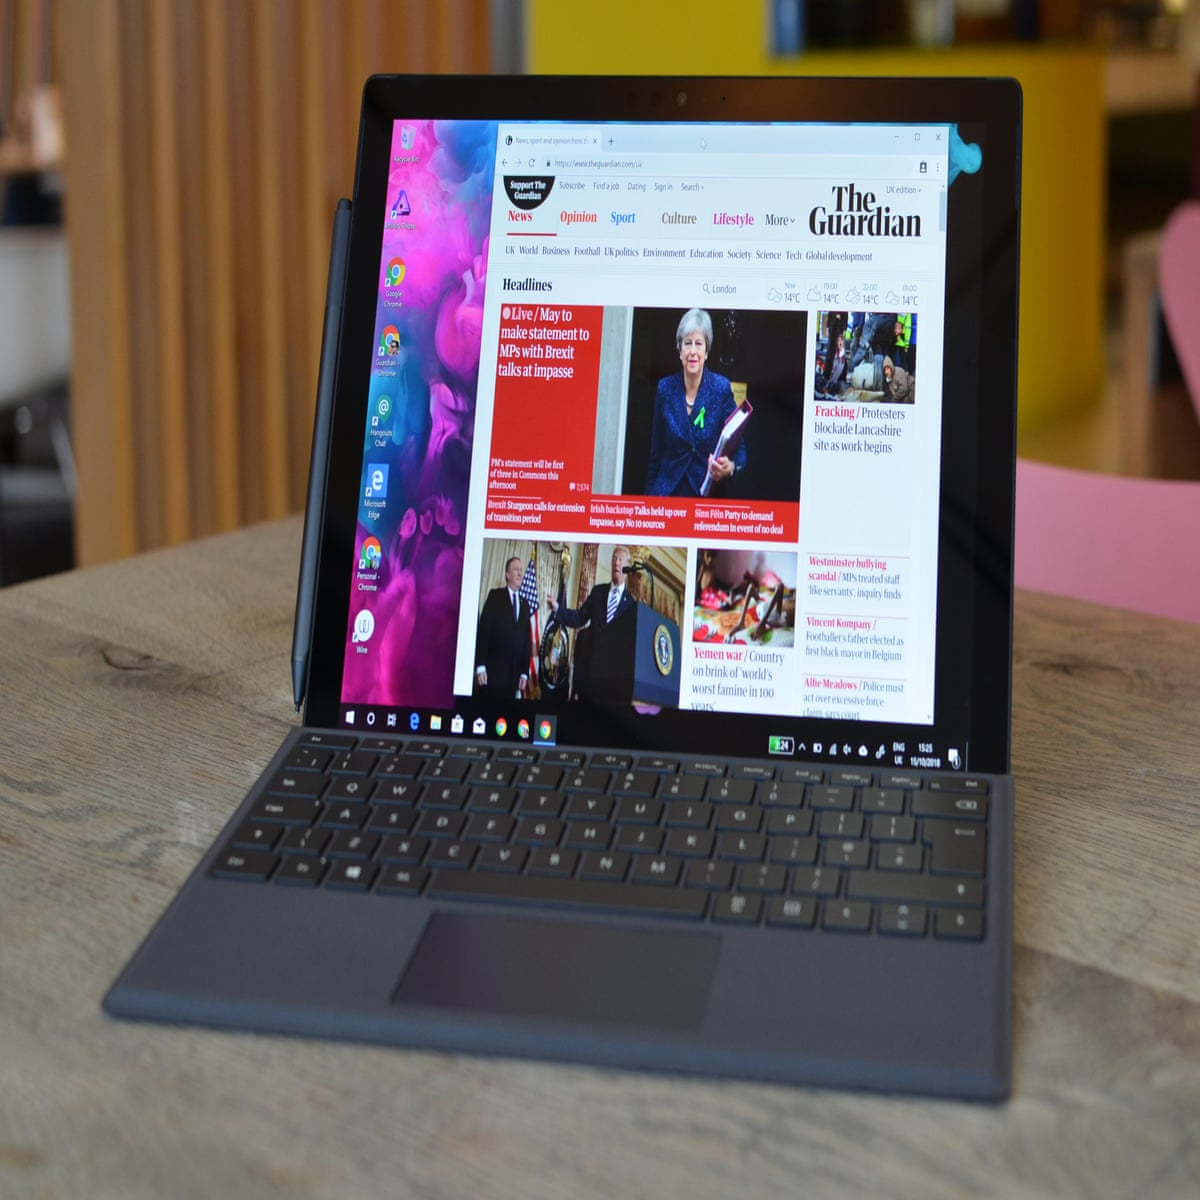 Windows surface pro laptop review | Surface Pro 6 Review